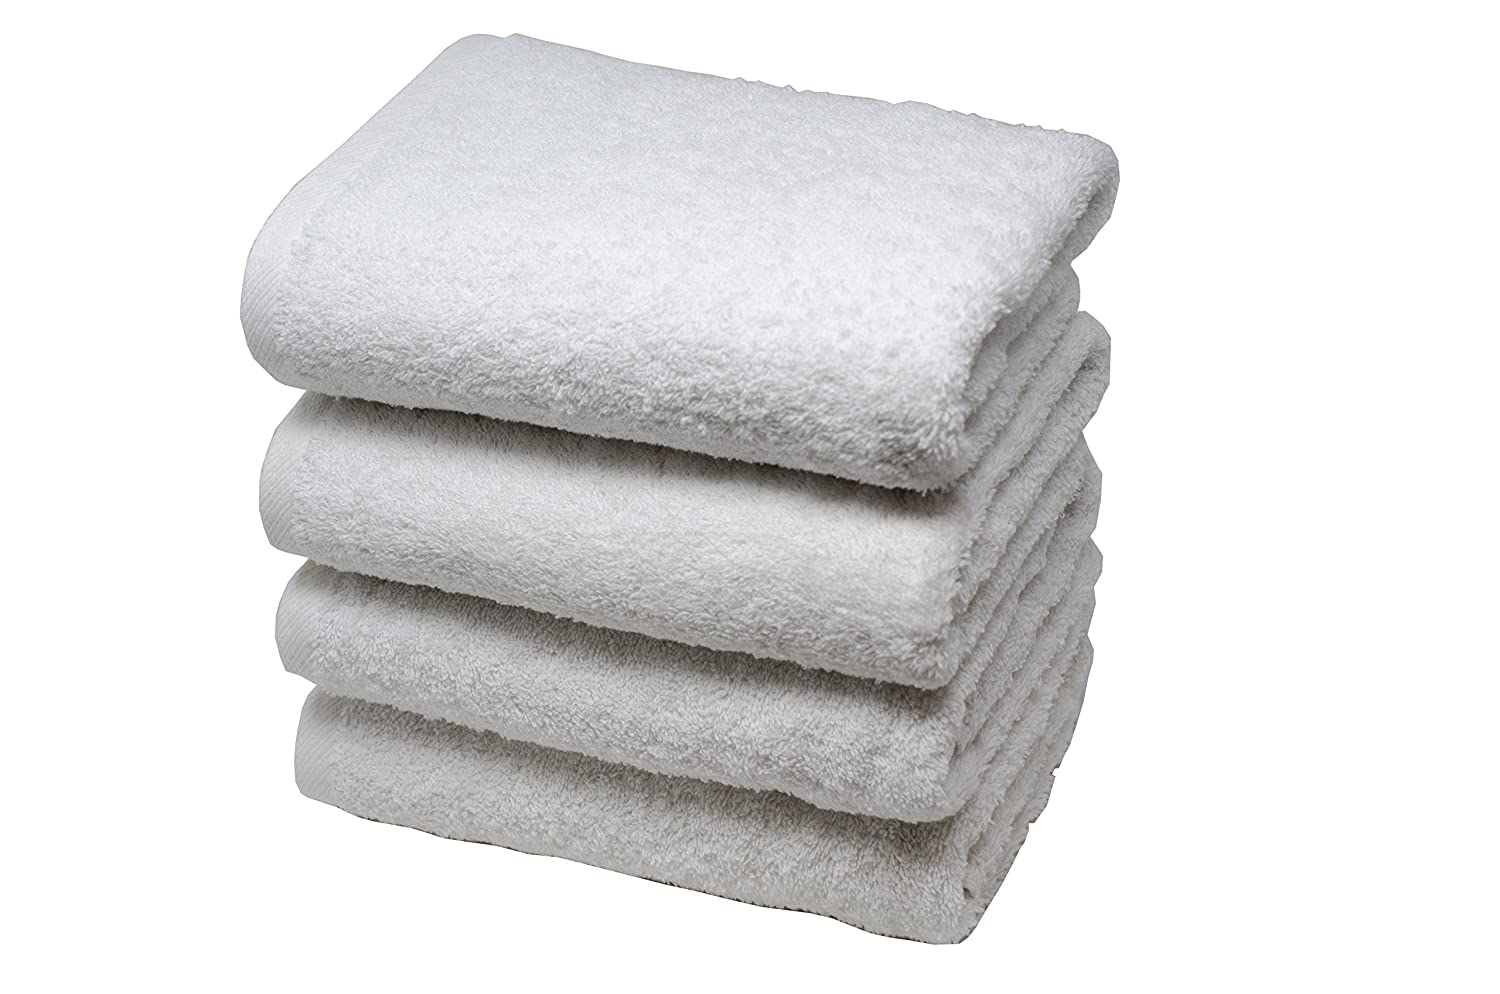 100% Turkish Cotton Extra Large (20 x 35 inch) Hand Towel Set of 4, for SPA, GYM, Hammam, Fitness and Sport, Oversized, XL, Large, Huge Big size Hand Towel, Premium Class, Luxury Hotel Series